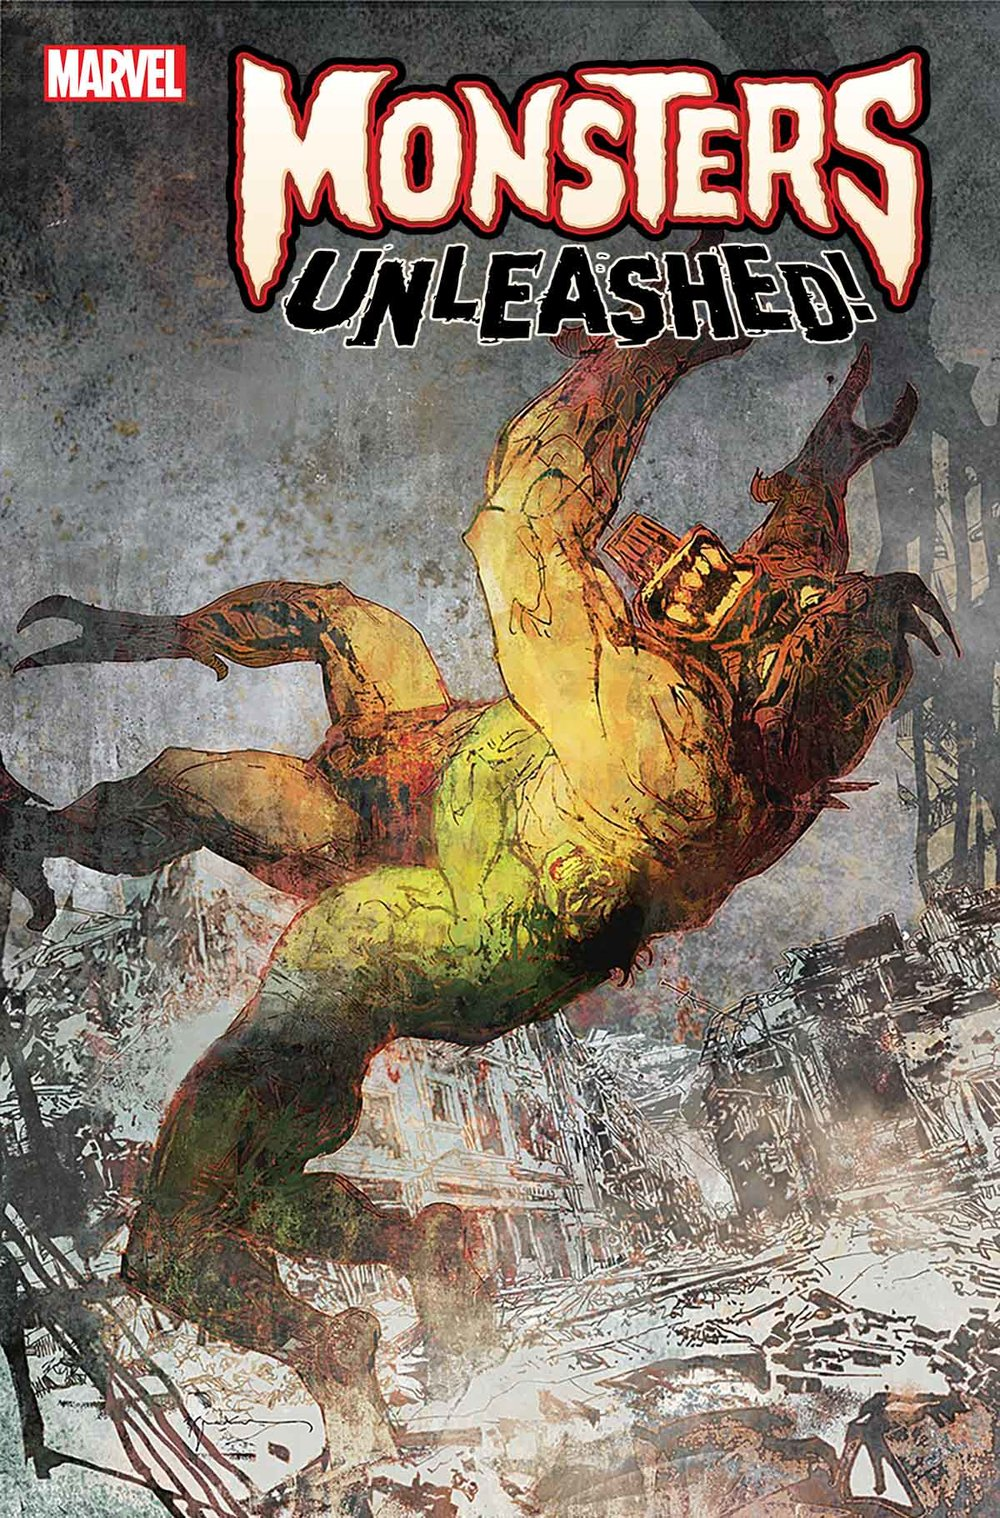 marvel-reveals-monsters-unleashed-variant-cover-art5